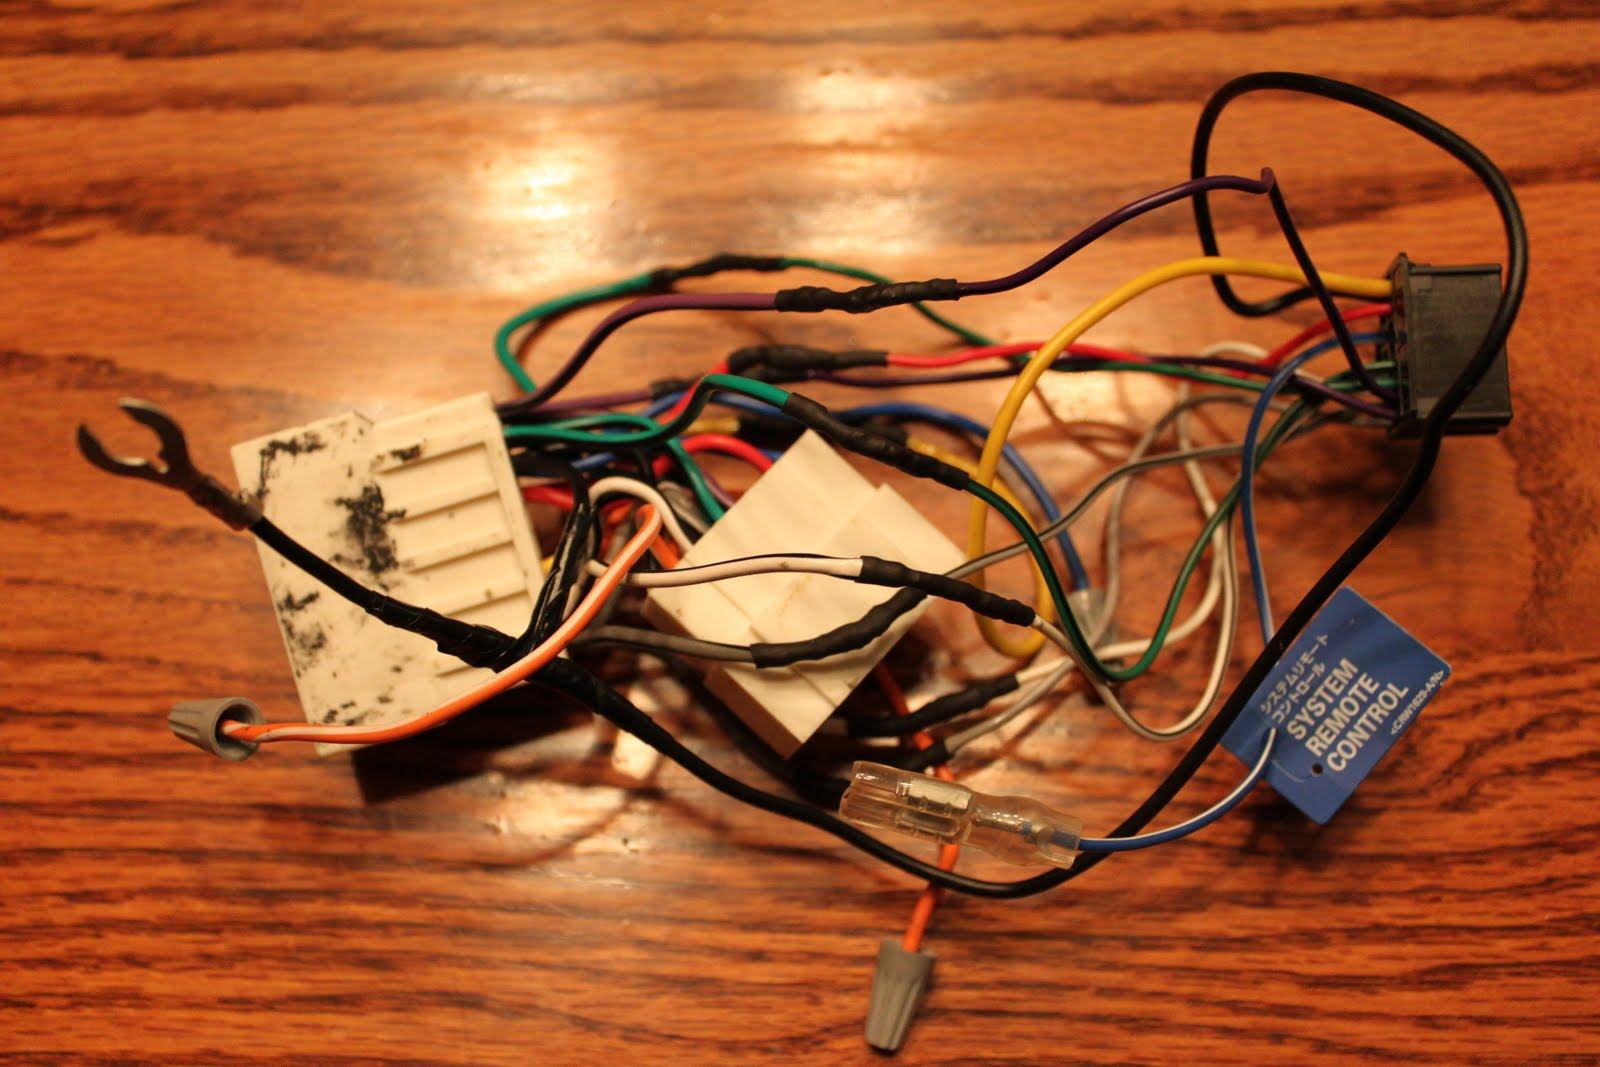 hight resolution of car radio wiring harness solder youtube car wiring harness kits bryan s blog soldering car stereo harness